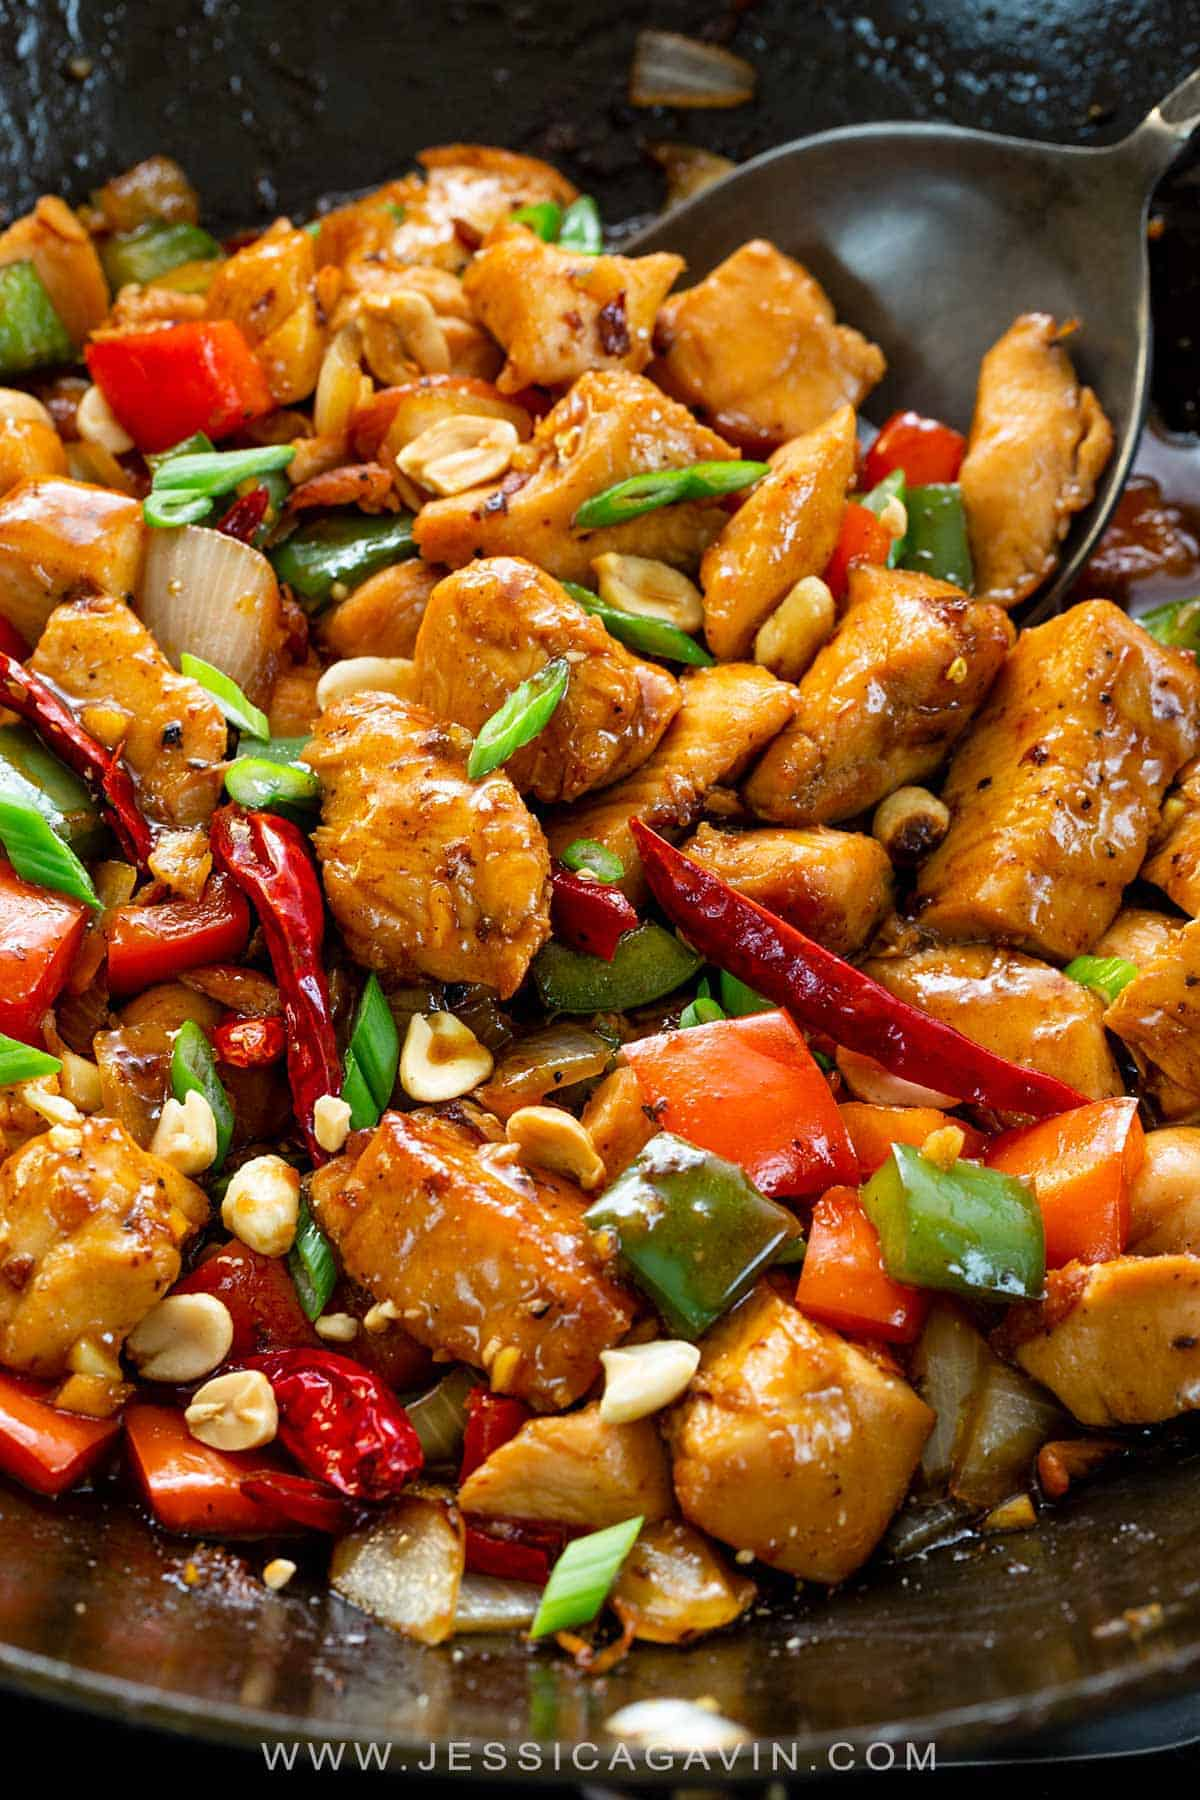 Kung pao chicken recipe with bell peppers, onions, lean white meat, and a spicy sauce that rivals authentic Chinese takeout! #kungpaochicken #chinesefood #asiancuisine #stirfry